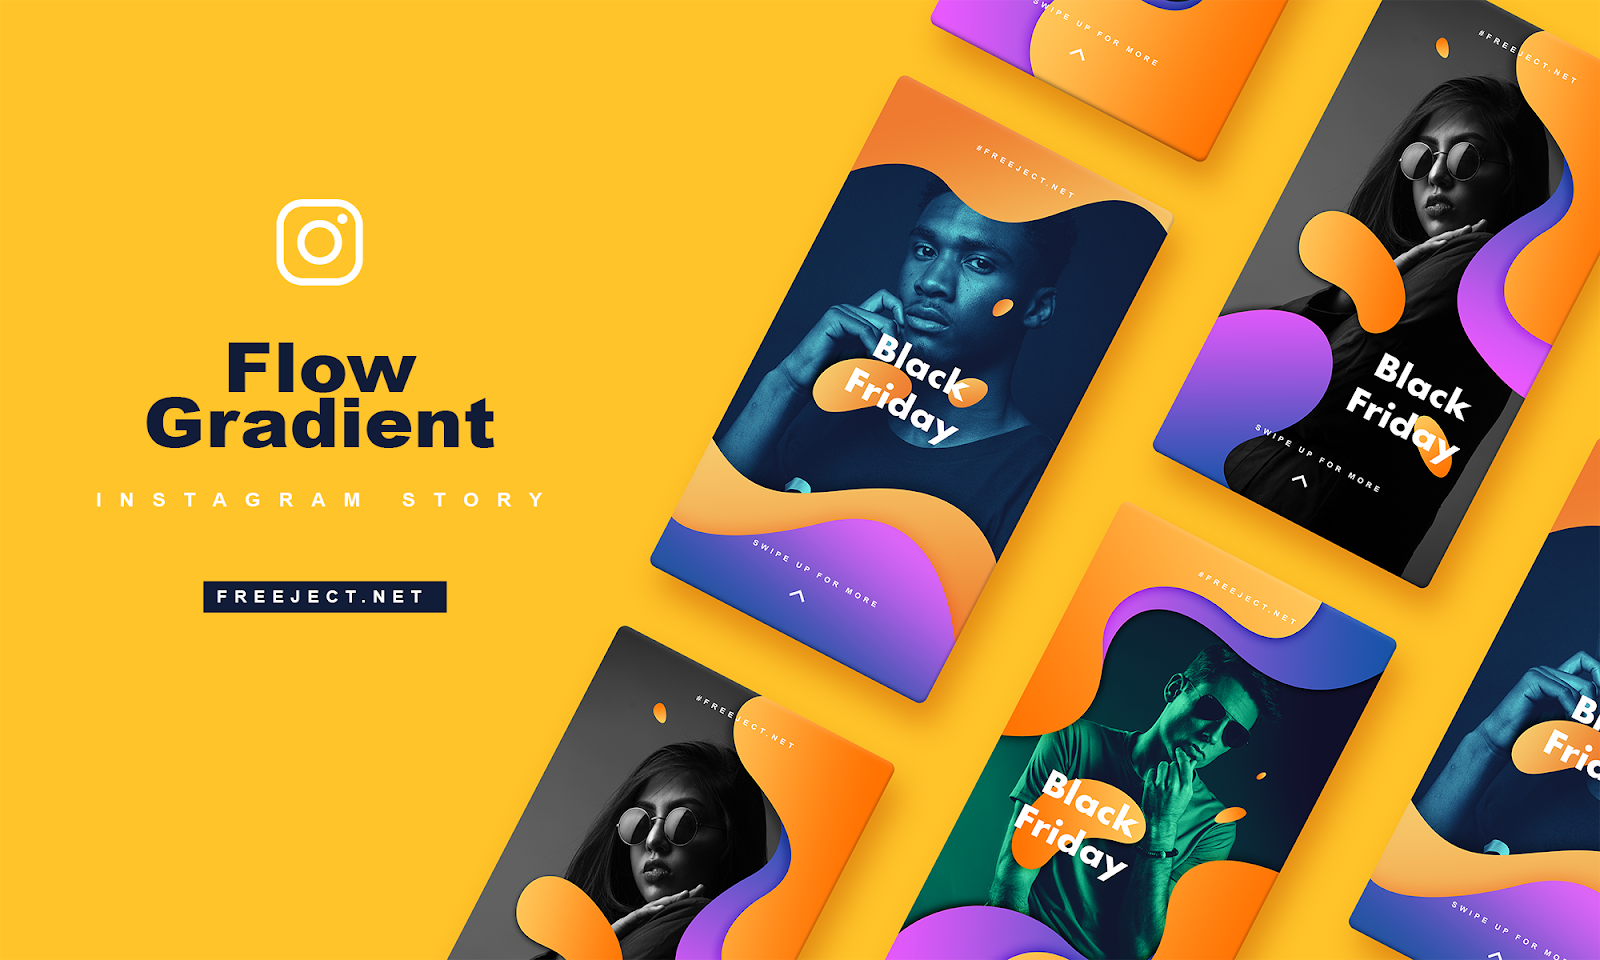 Free Download Flow Gradient Instagram Story Template - PSD File